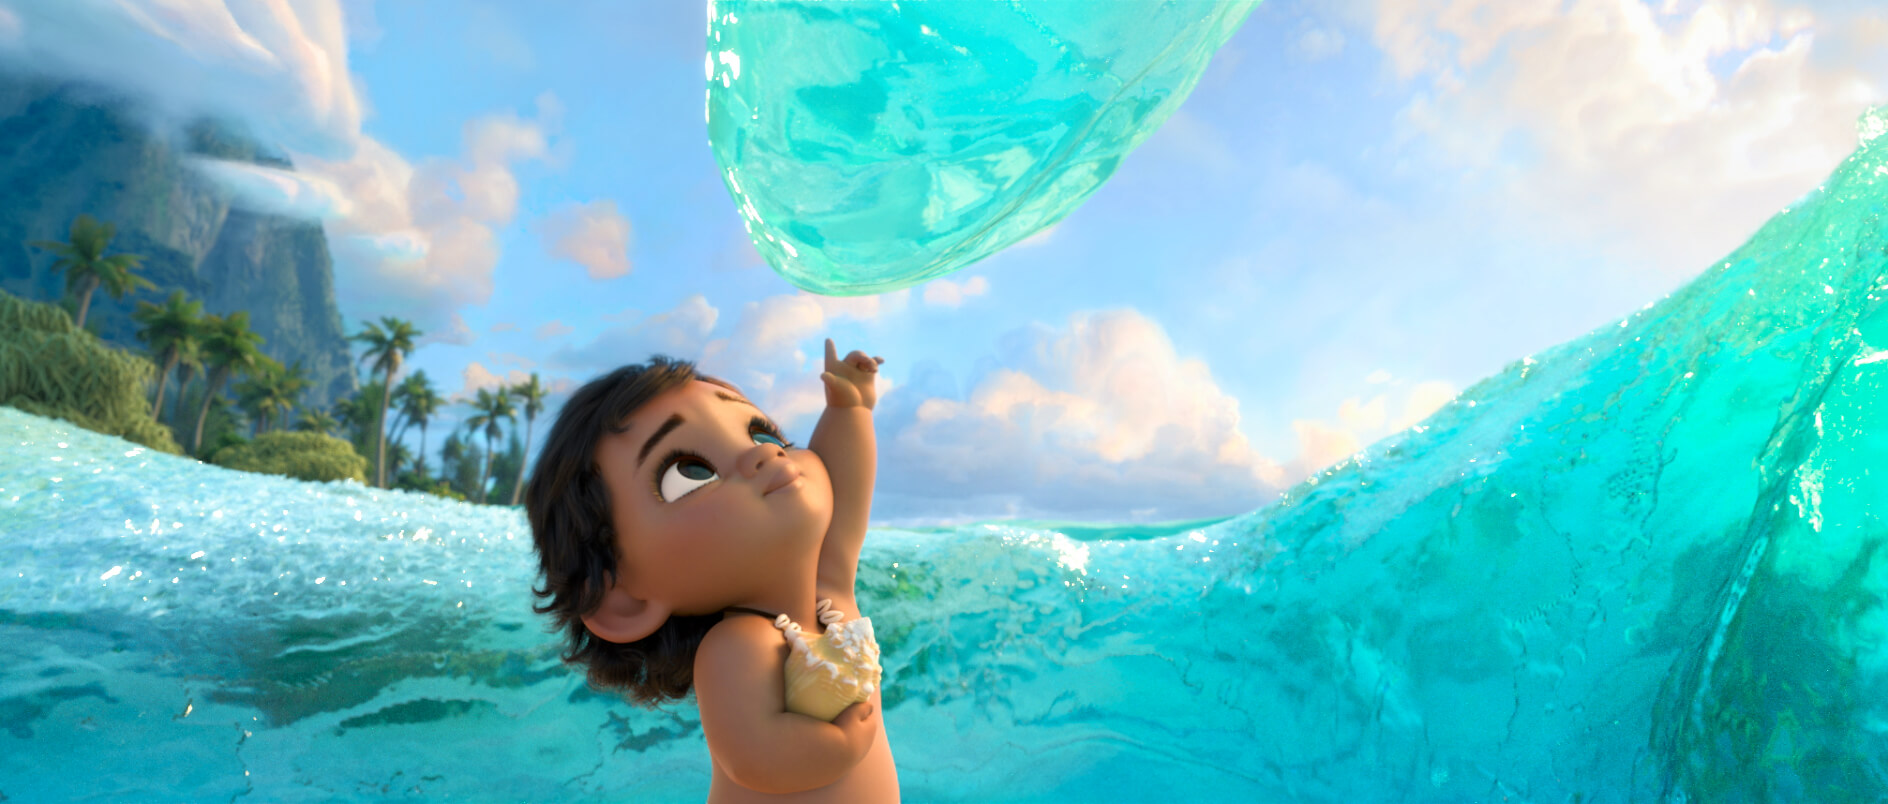 Preview take a glimpse behind the scenes of moana walt for El mural pelicula online